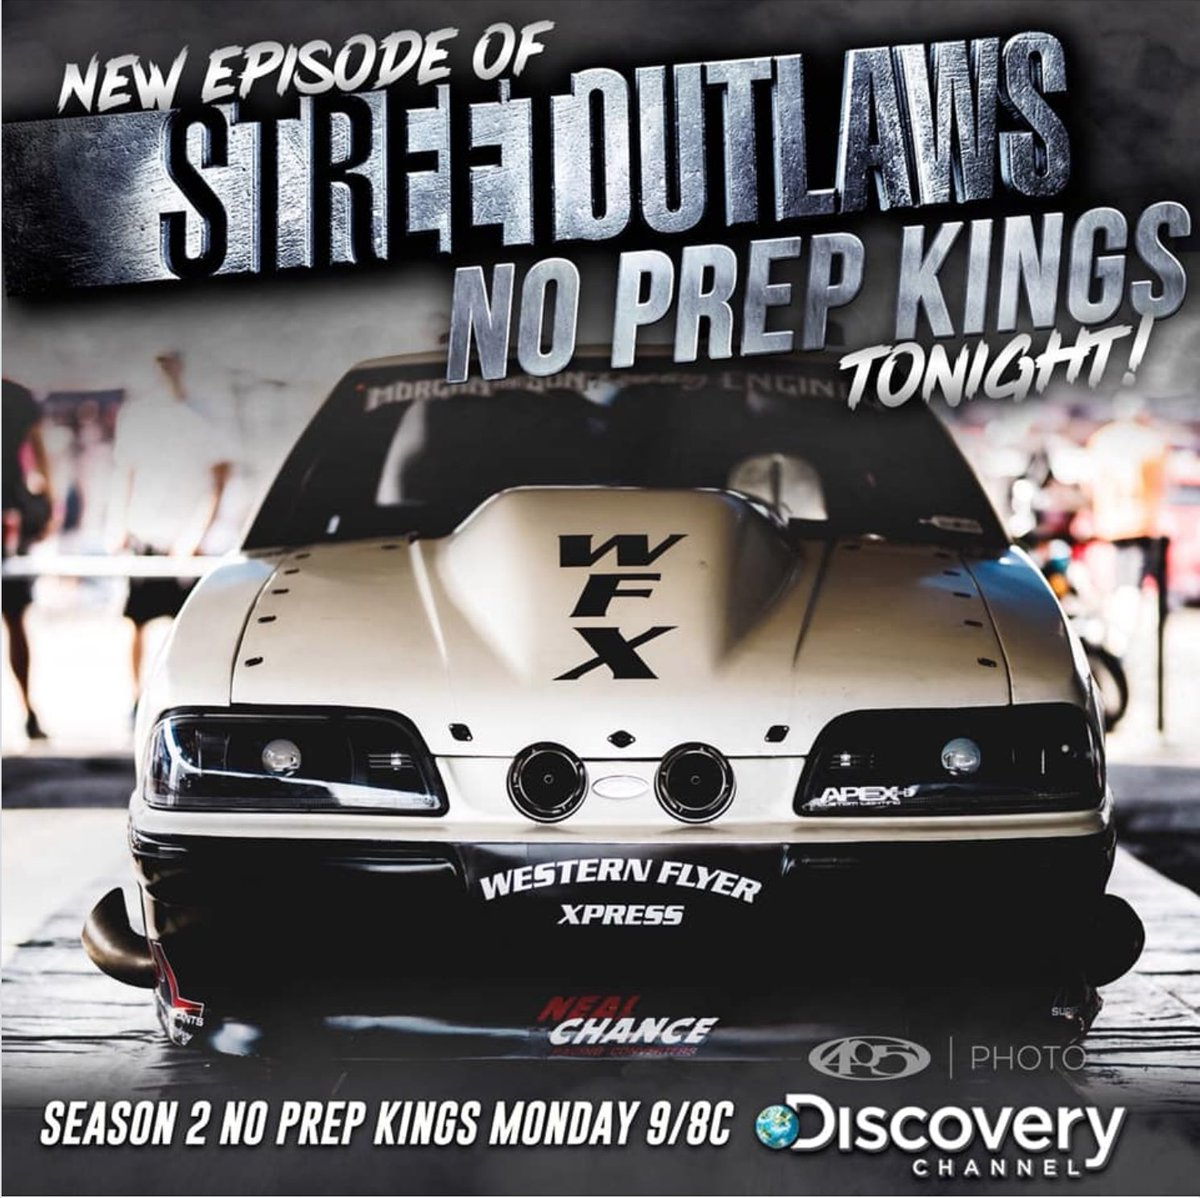 Round 2 at Maple Grove Raceway...at 9/8 Central on Discovery...insider facts and bonus footage too! #streetoutlaws #noprepkings #drivewFX #teamWFX #drivethedream #racing